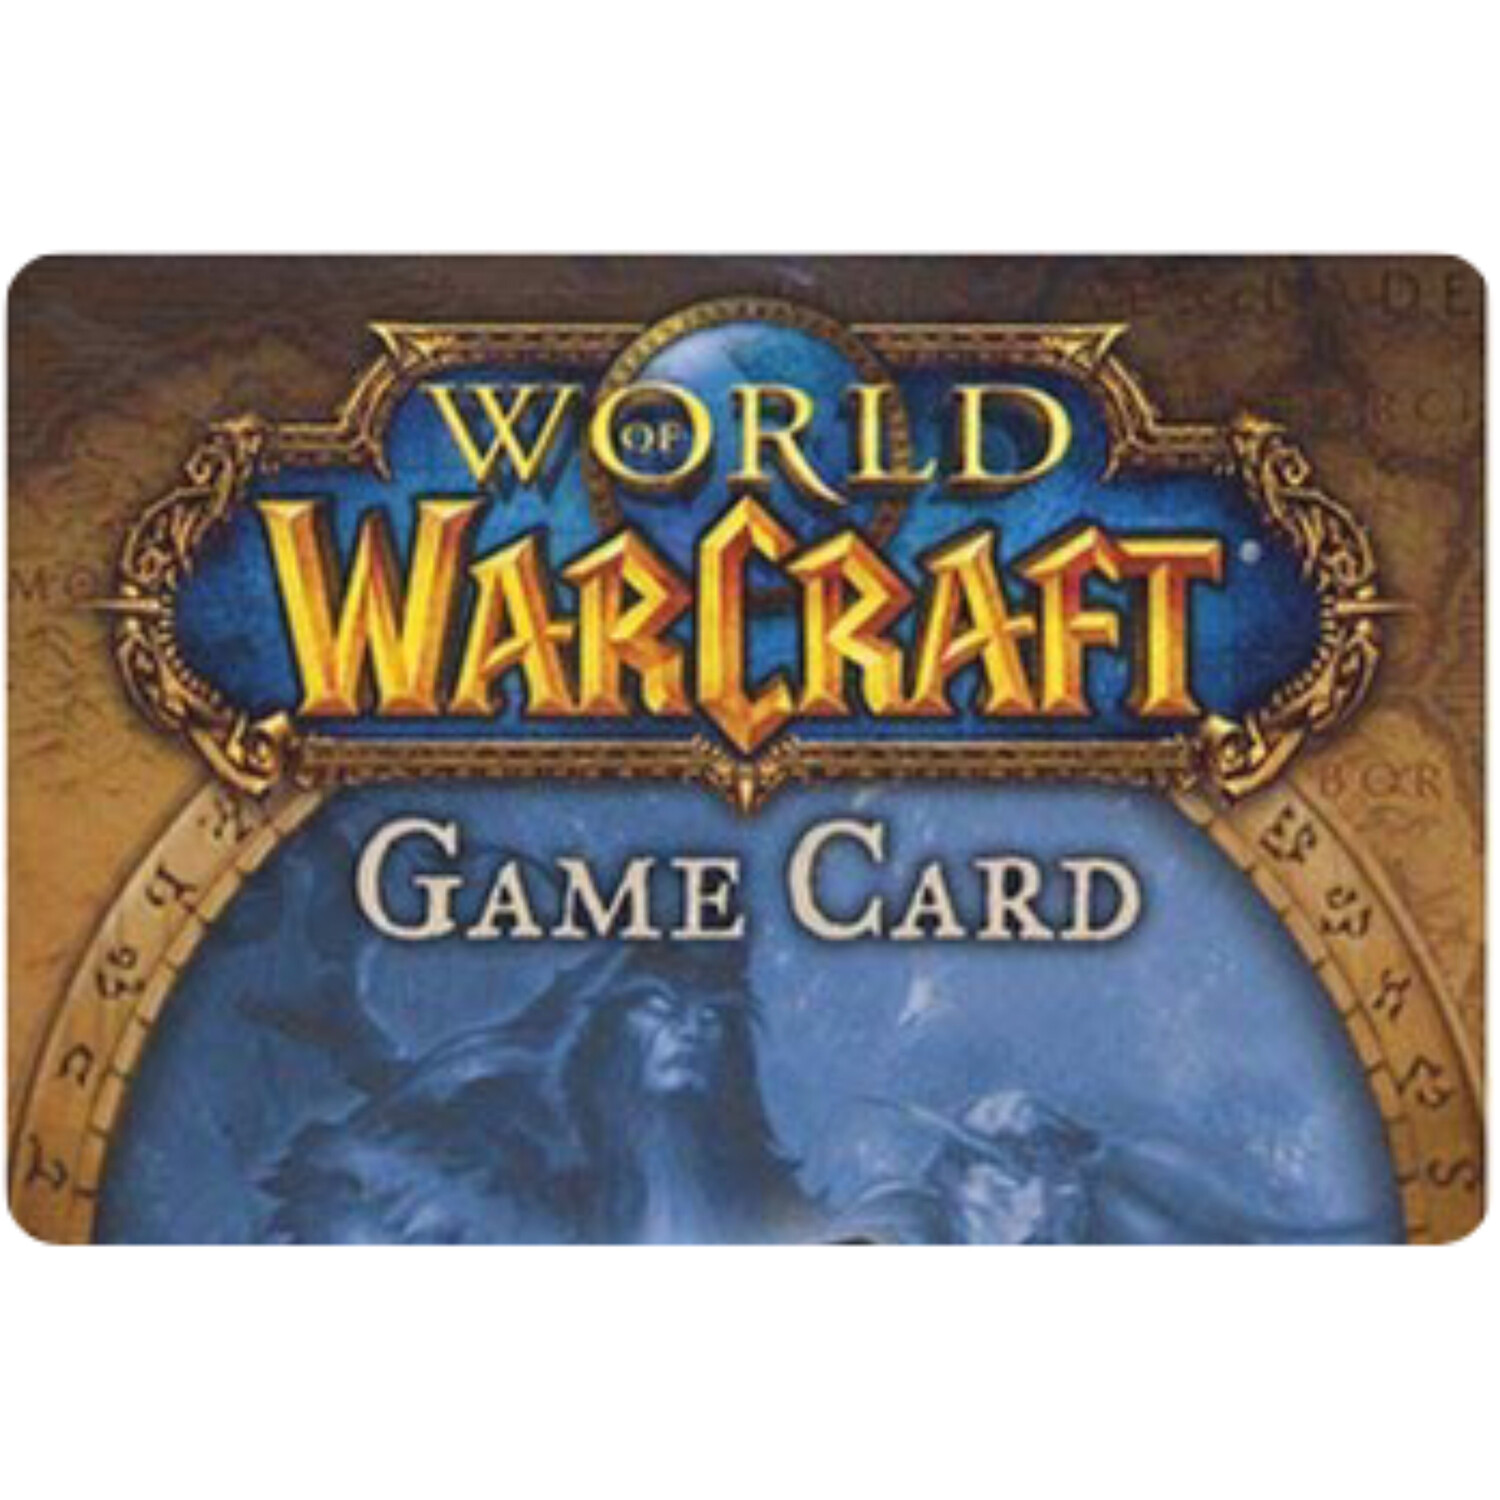 World of Warcraft Game Card